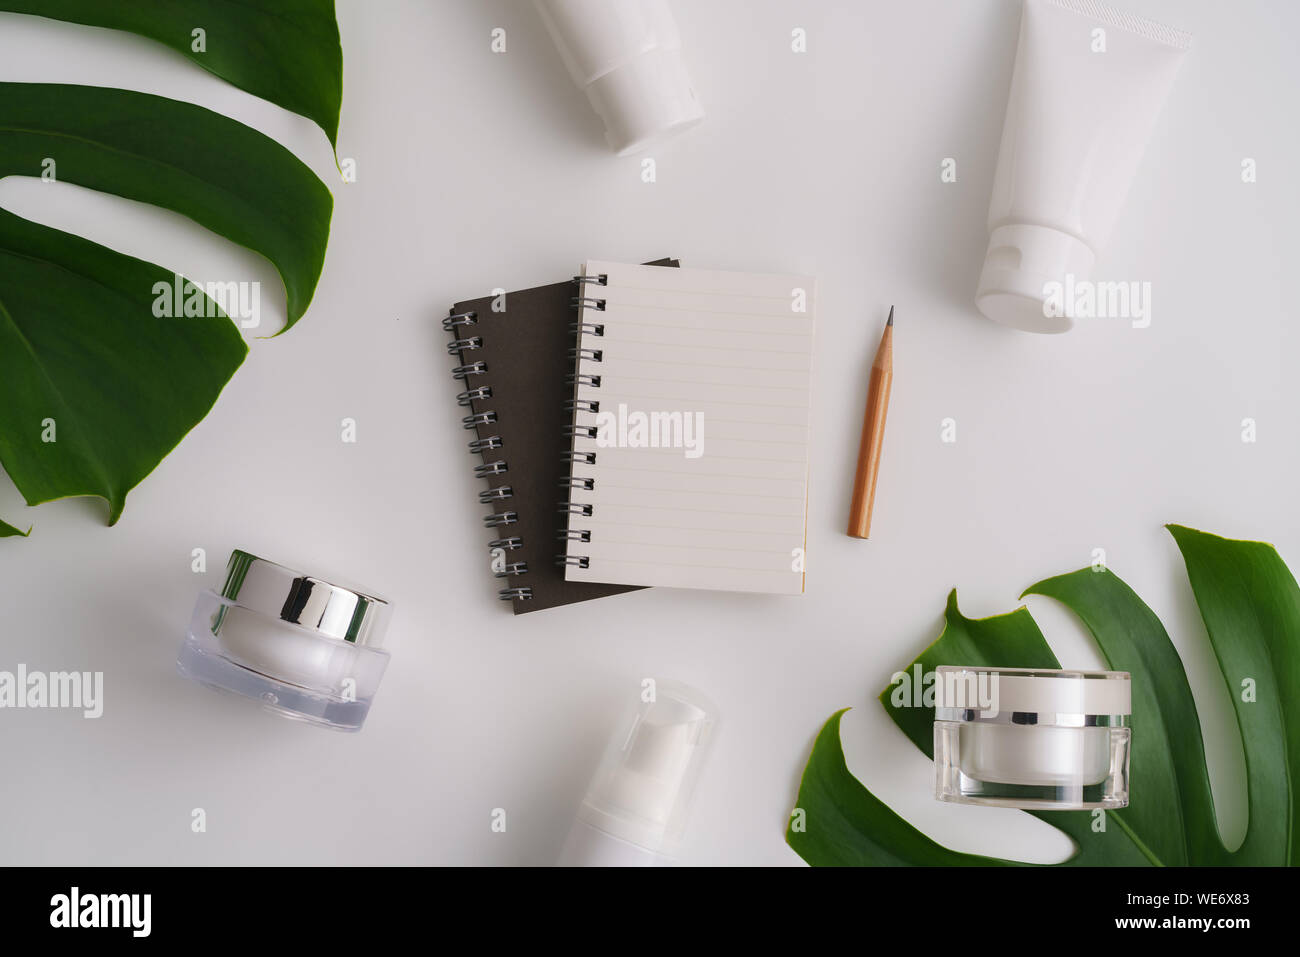 Directly Above Shot Of Spiral Notebook With Leaves And Beauty Products On Table Stock Photo